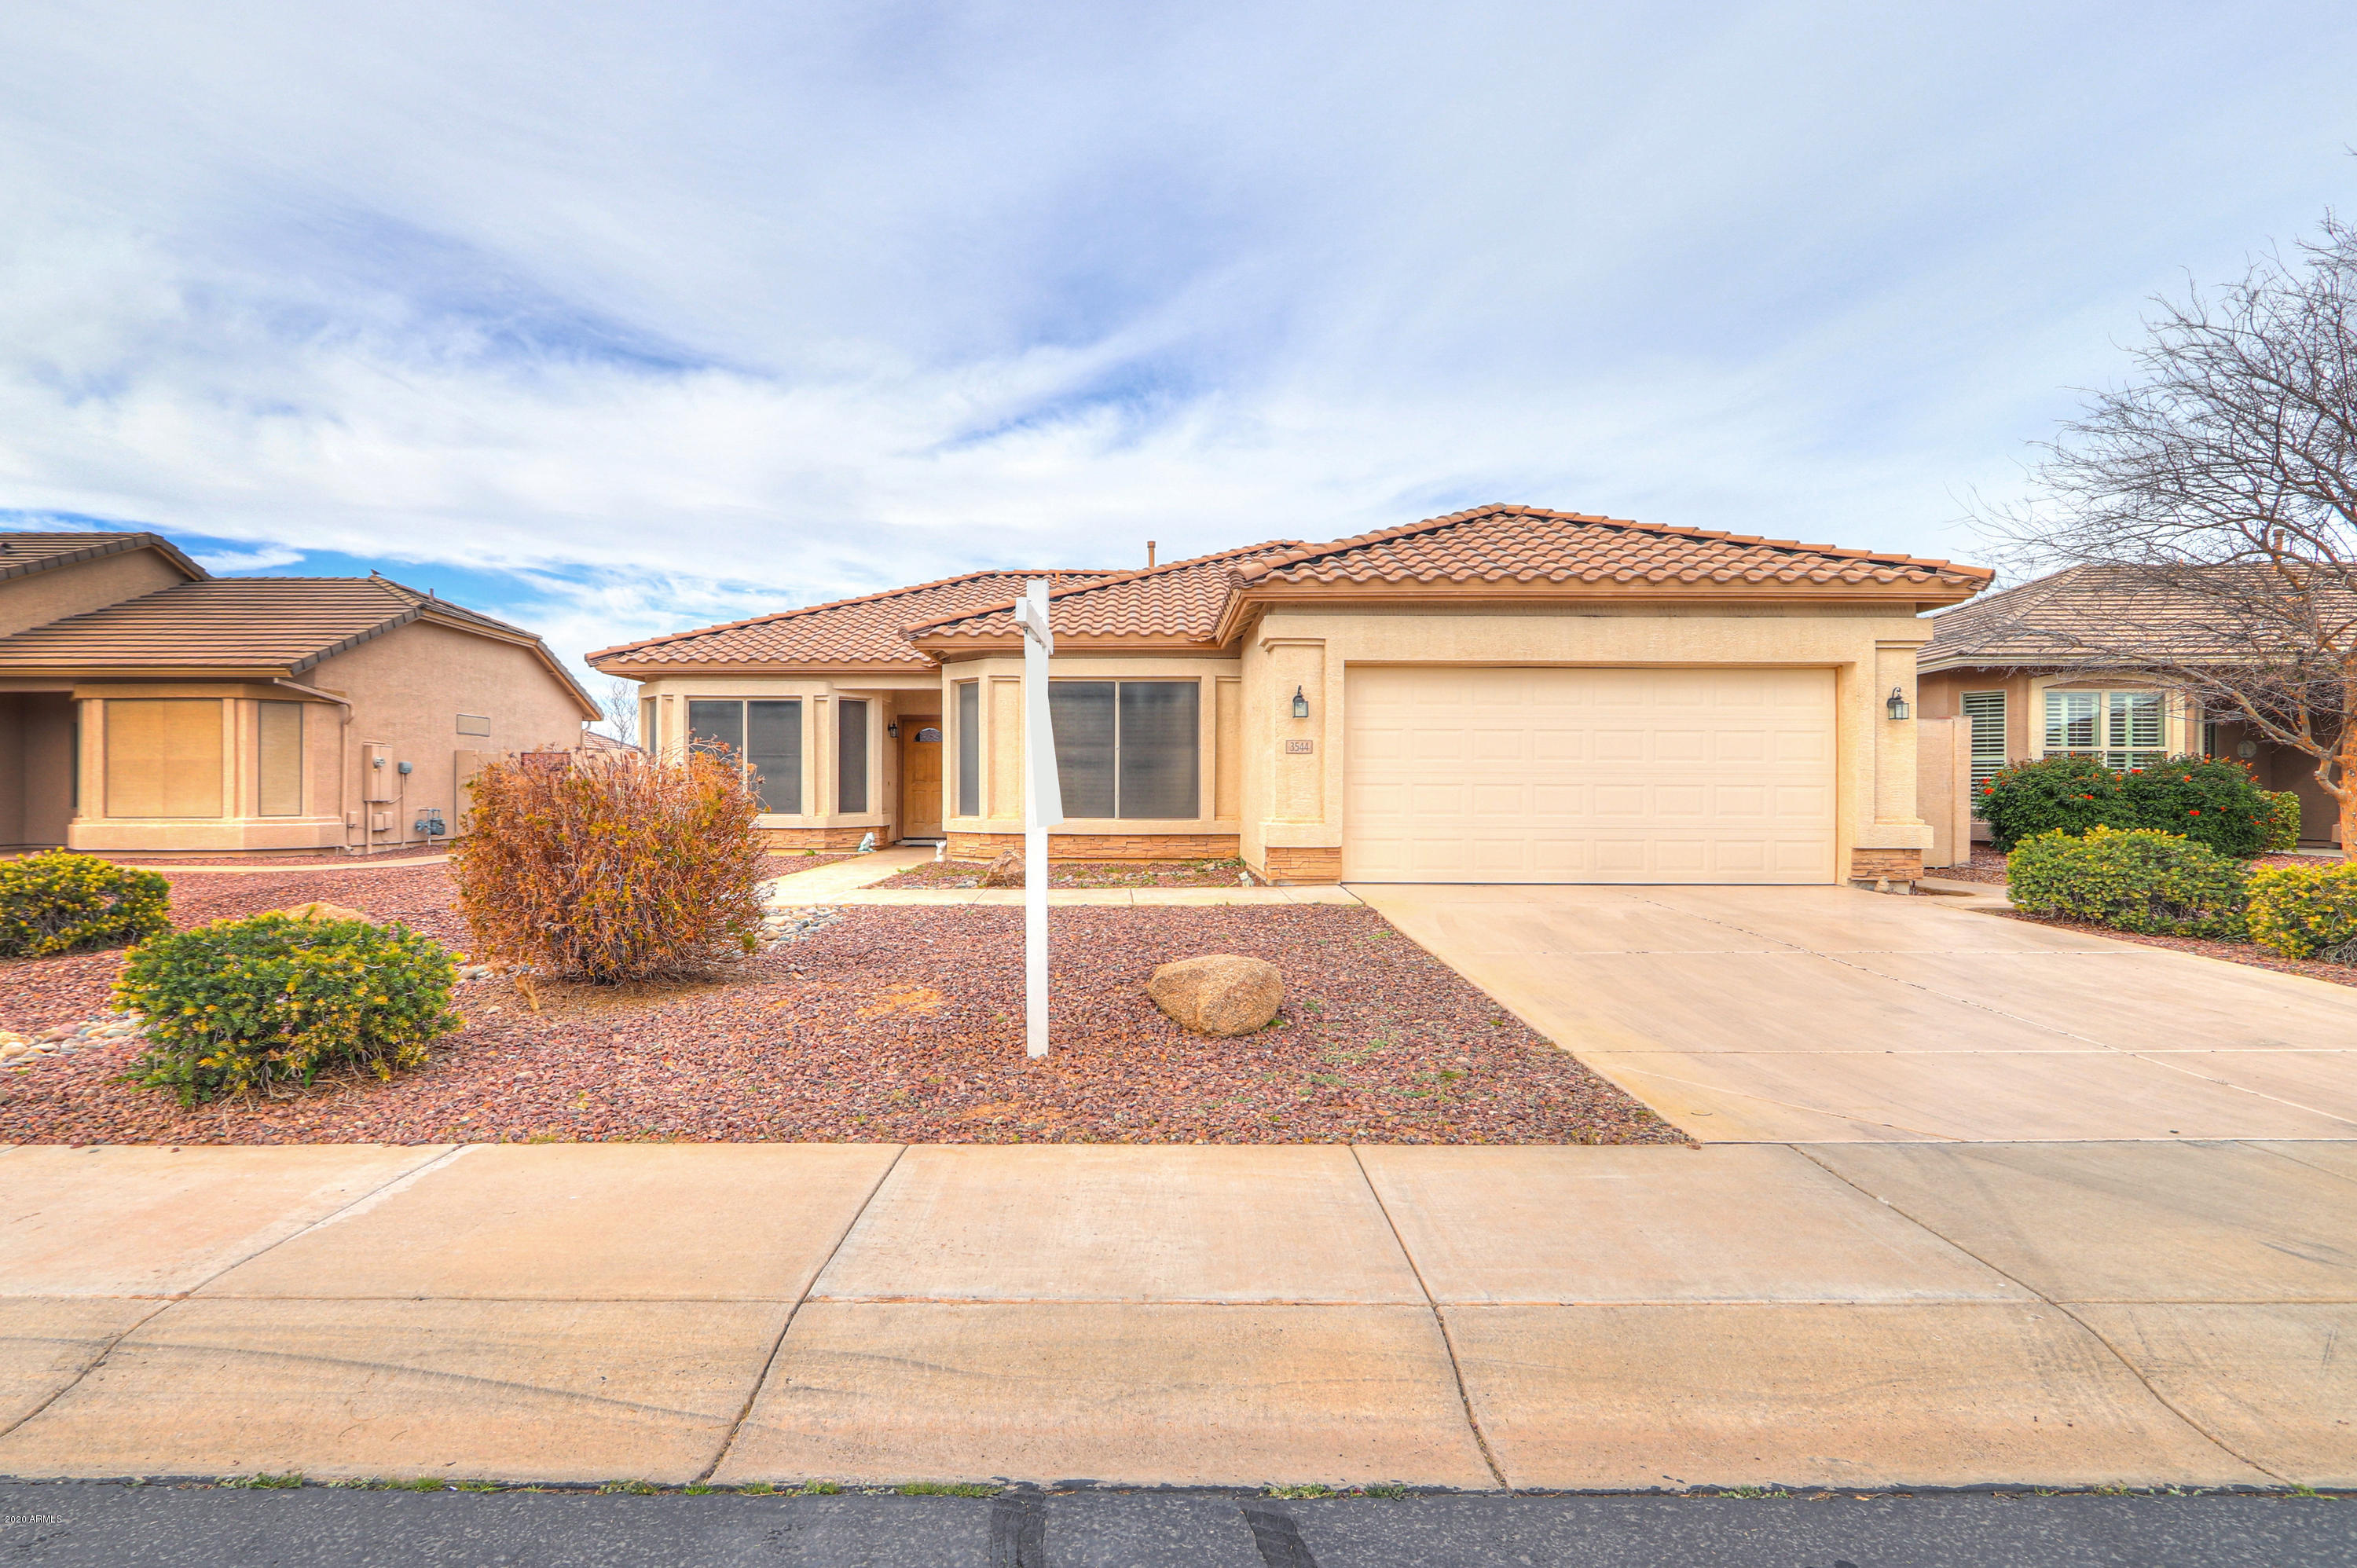 Photo of 3544 E COUNTY DOWN Drive, Chandler, AZ 85249